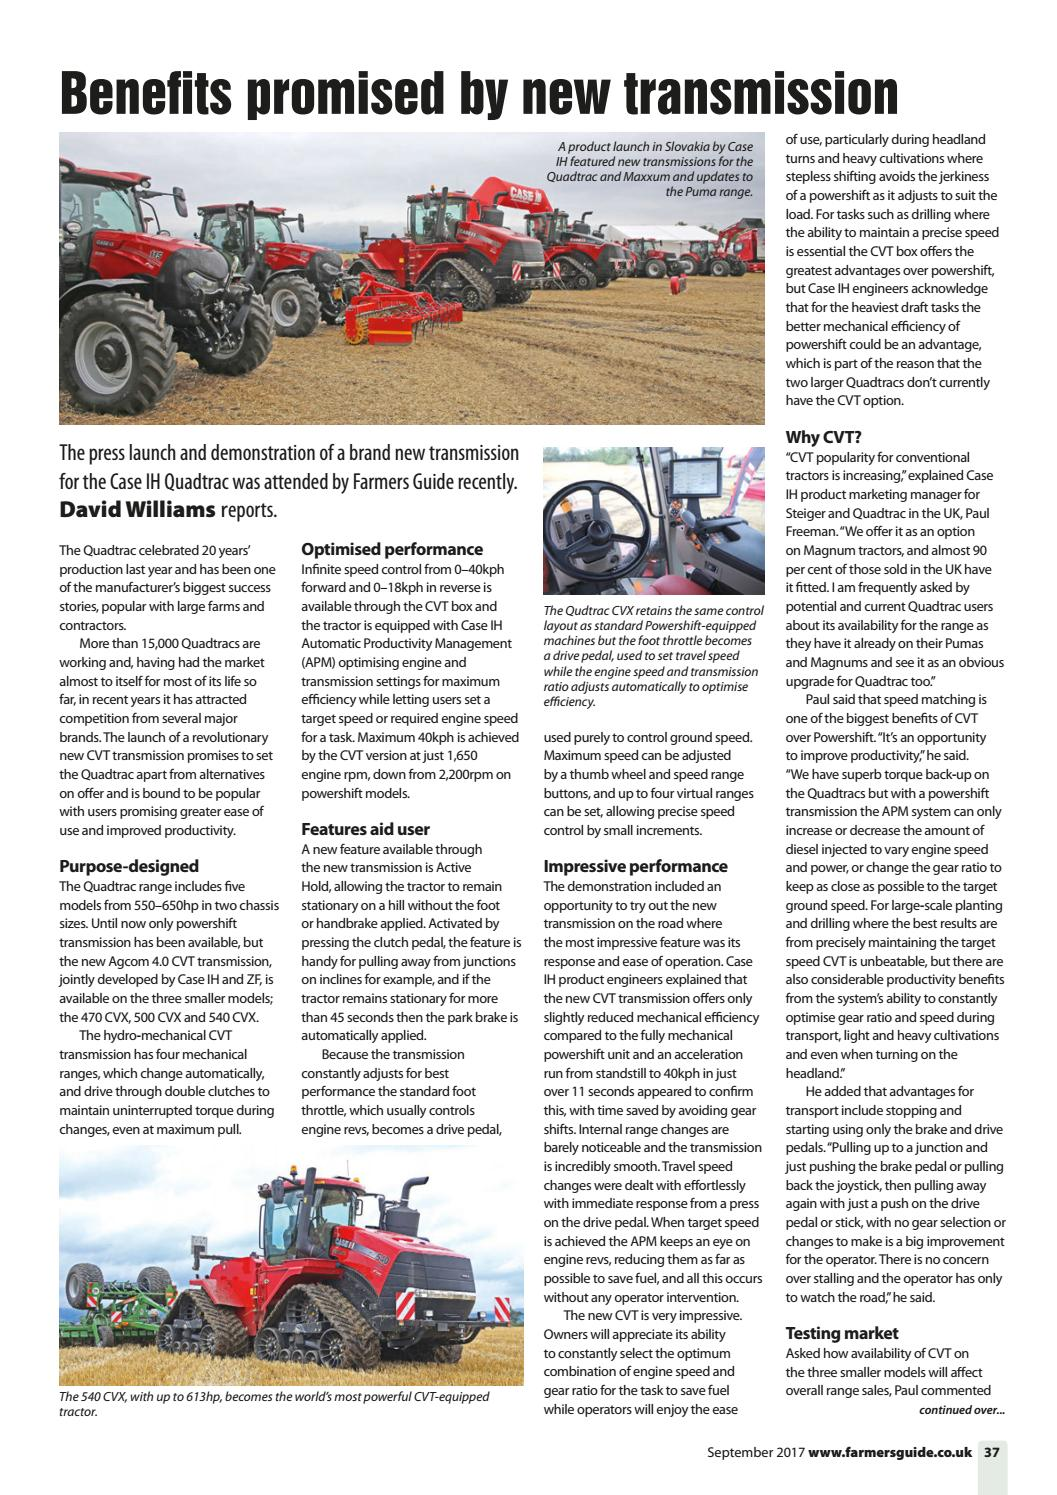 Farmers Guide September 2017 by Farmers Guide - issuu